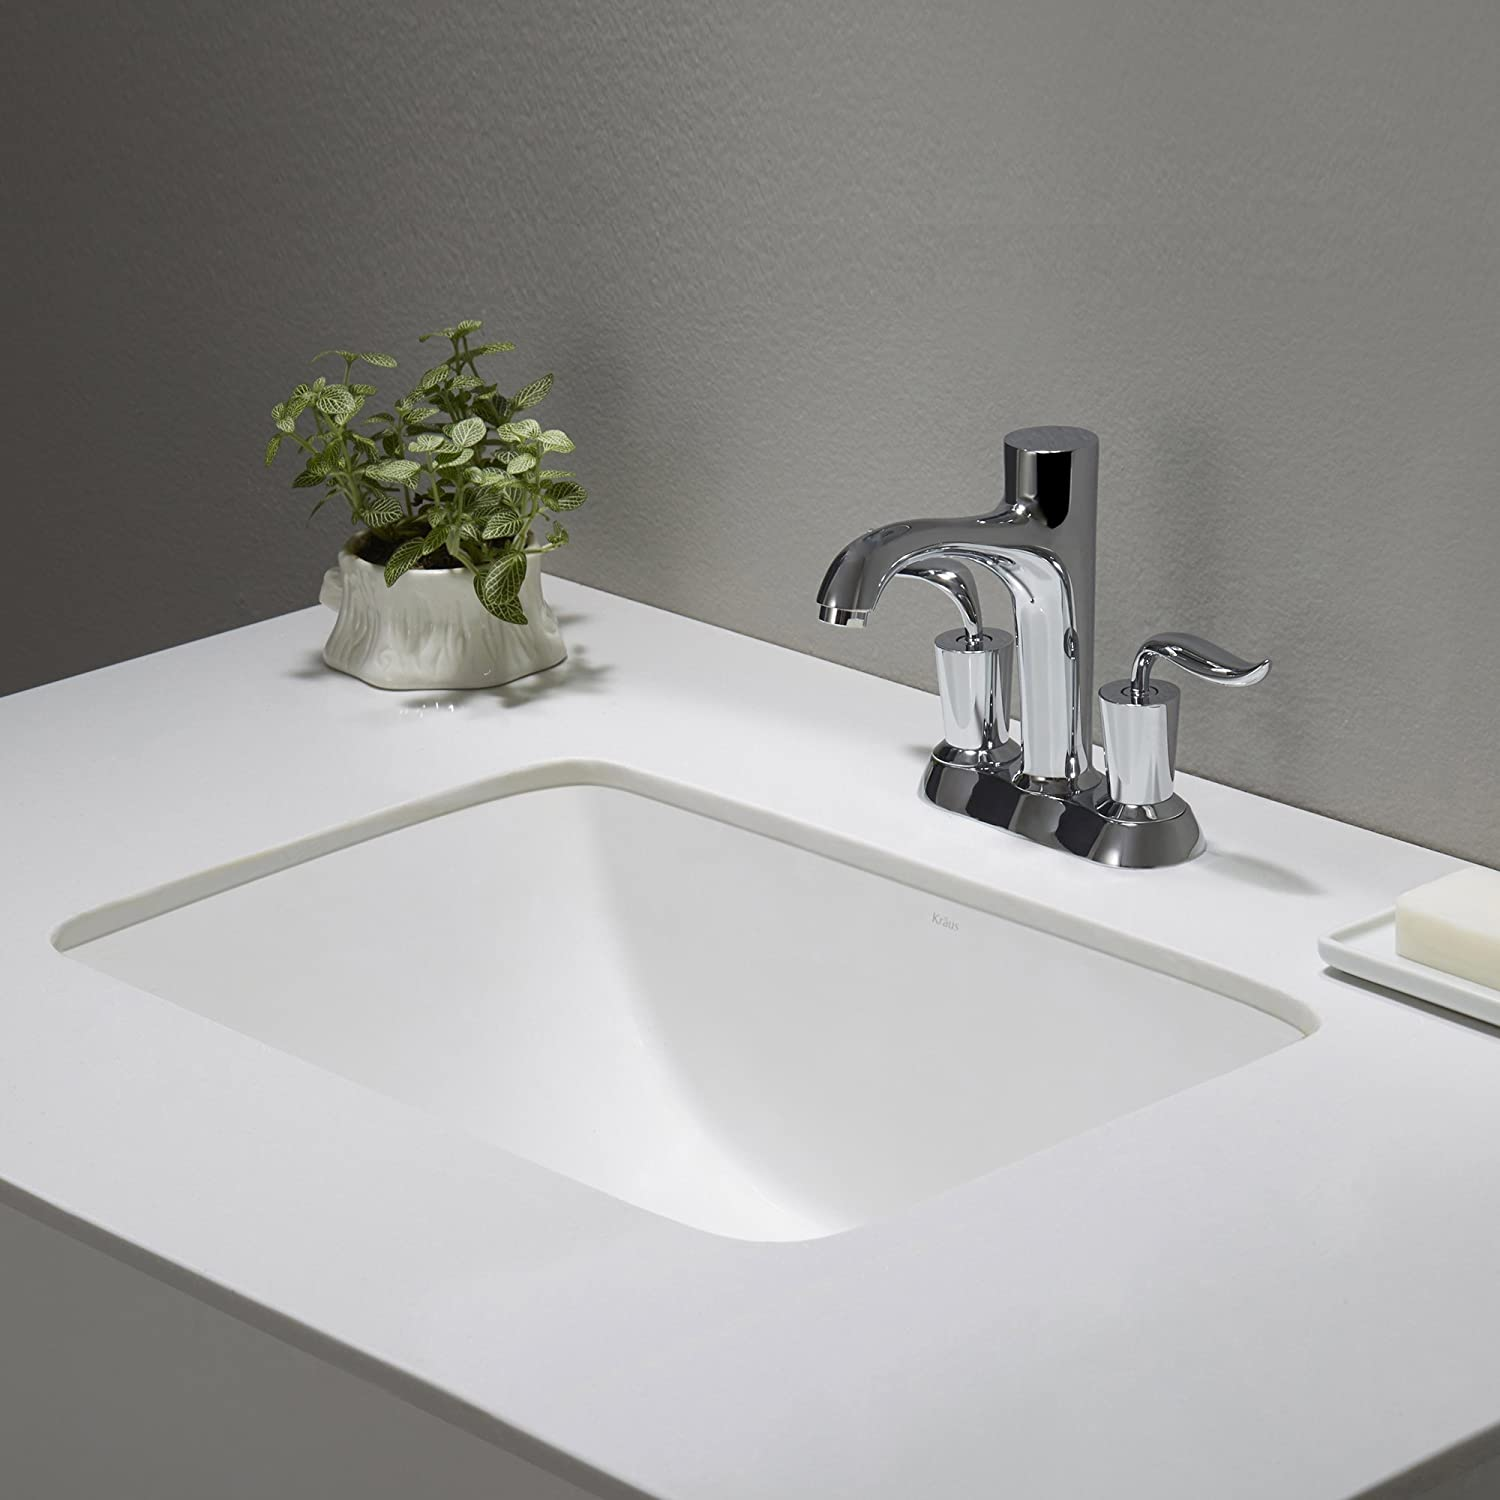 kraus kcu elavo ceramic small rectangular undermount bathroom sink withoverflow white   amazoncom. kraus kcu elavo ceramic small rectangular undermount bathroom